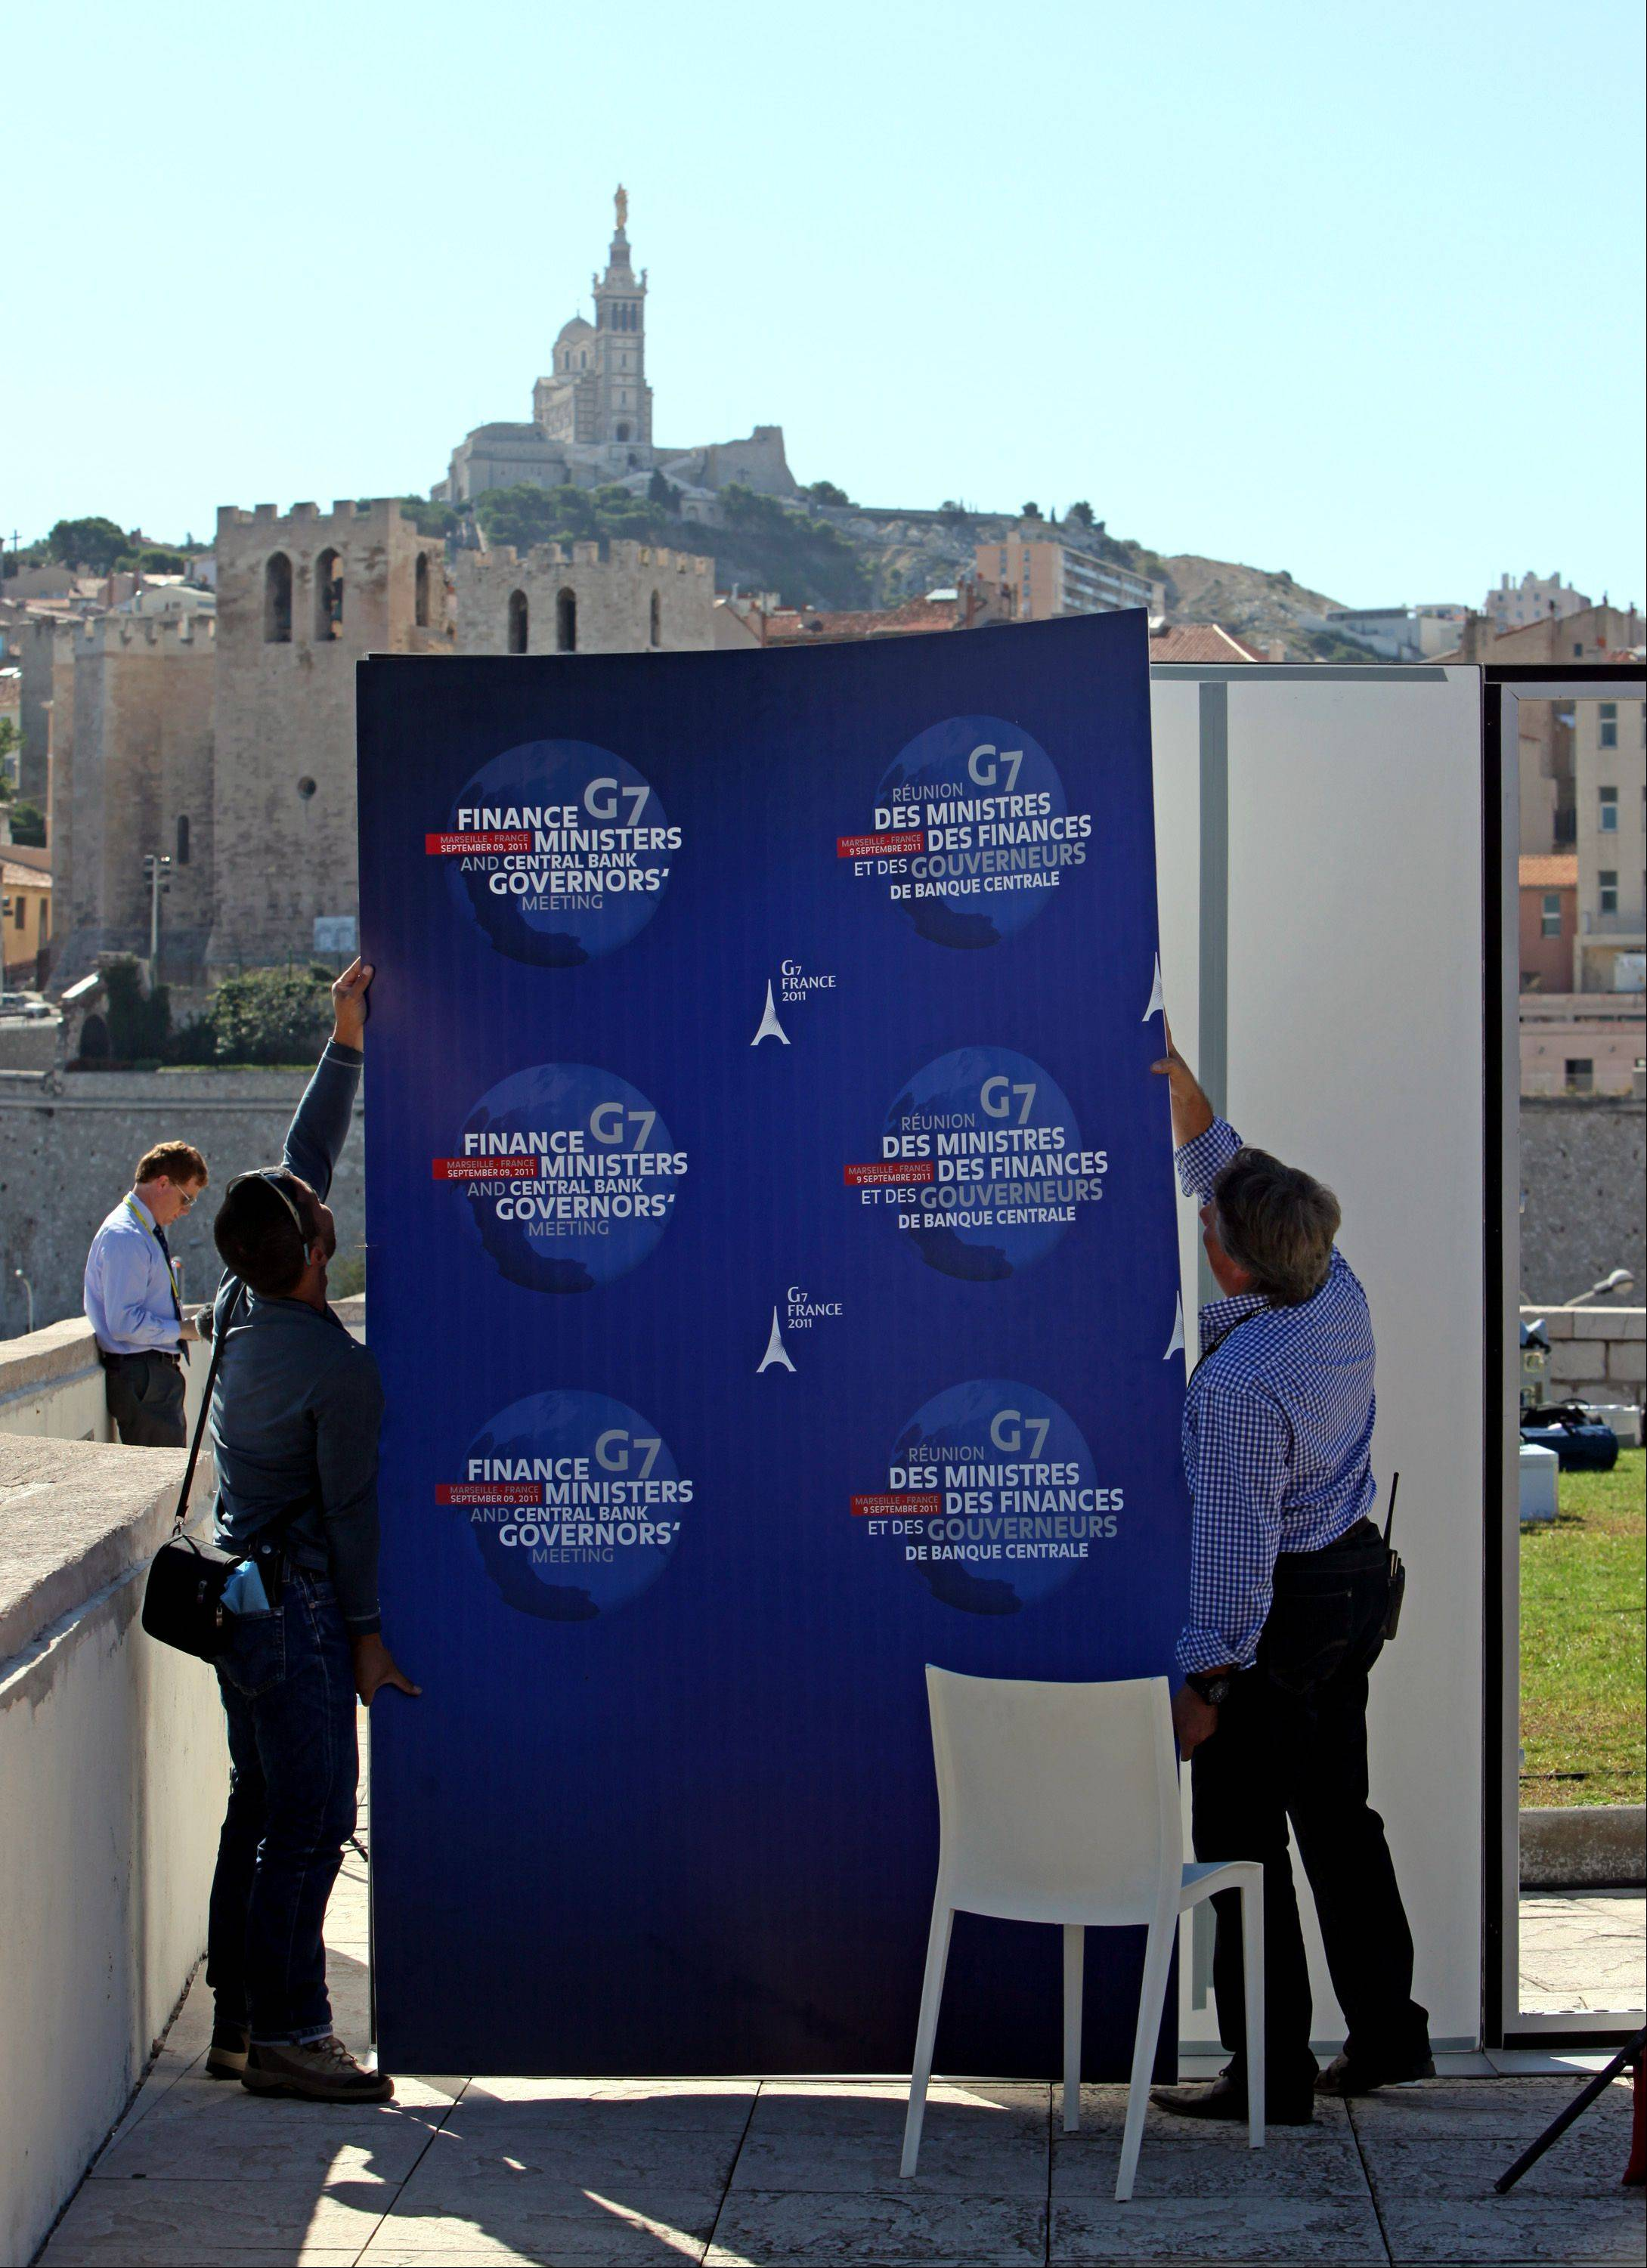 Employees install a G7 summit poster near the Le Palais du Pharo, the location for the G7 finance ministers and central bank governors meeting in Marseille, France, on Friday, Sept. 9, 2011. The Group of Seven, the United States, France, Germany, Italy, Britain, Japan and Canada meet in the French port of Marseilles today for the two day meeting.